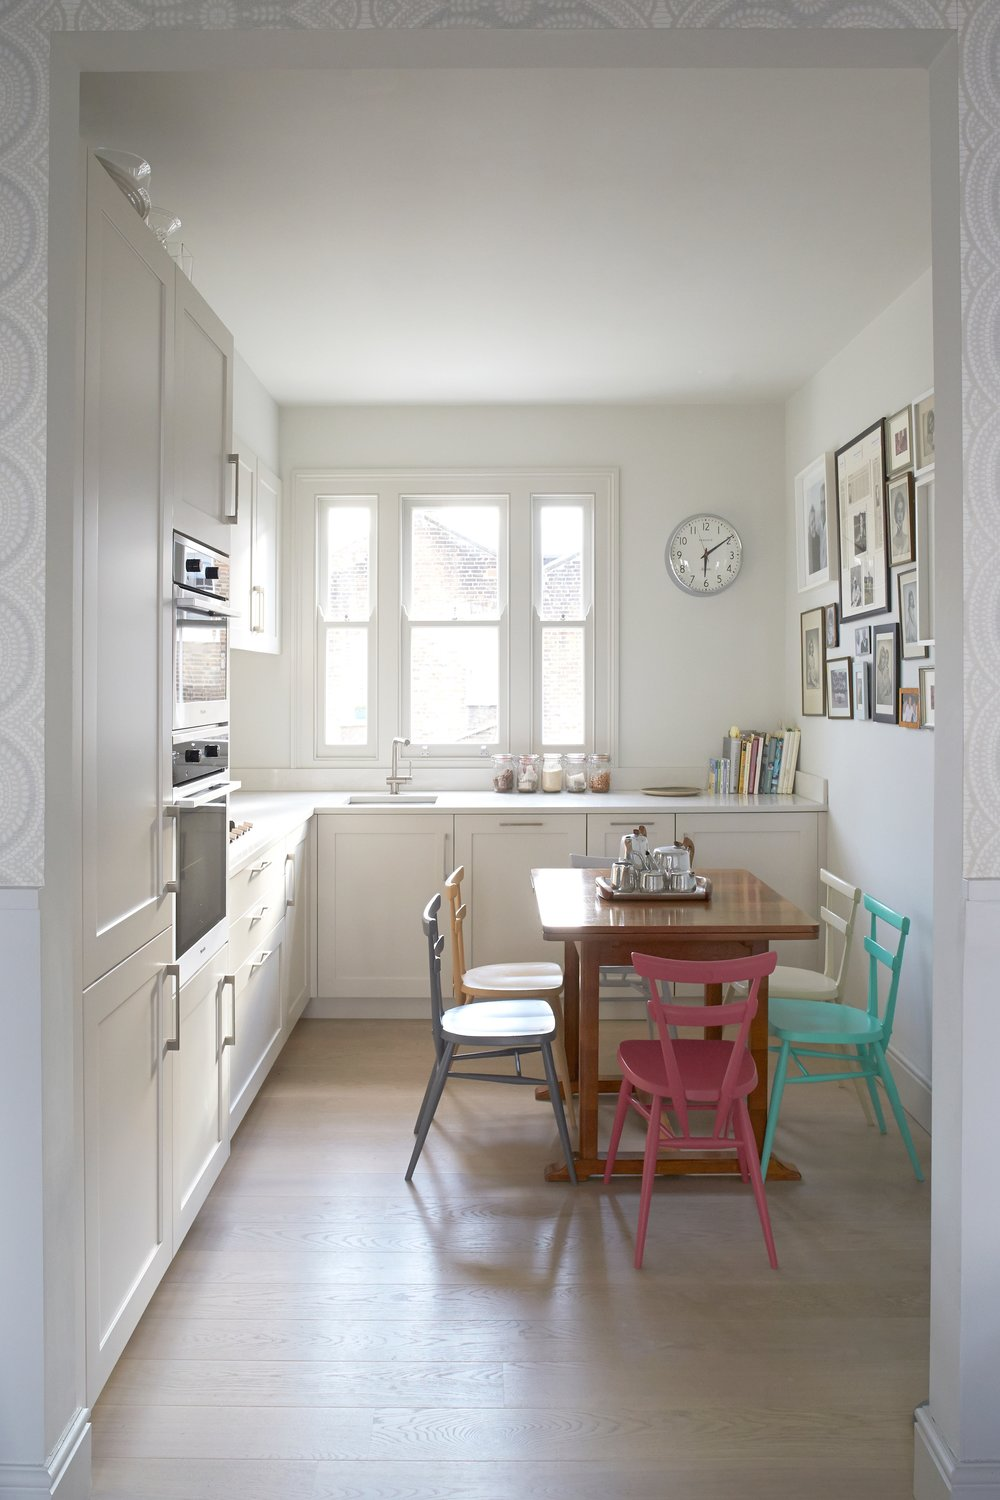 Notting Hill W11 Kitchen 2.jpg